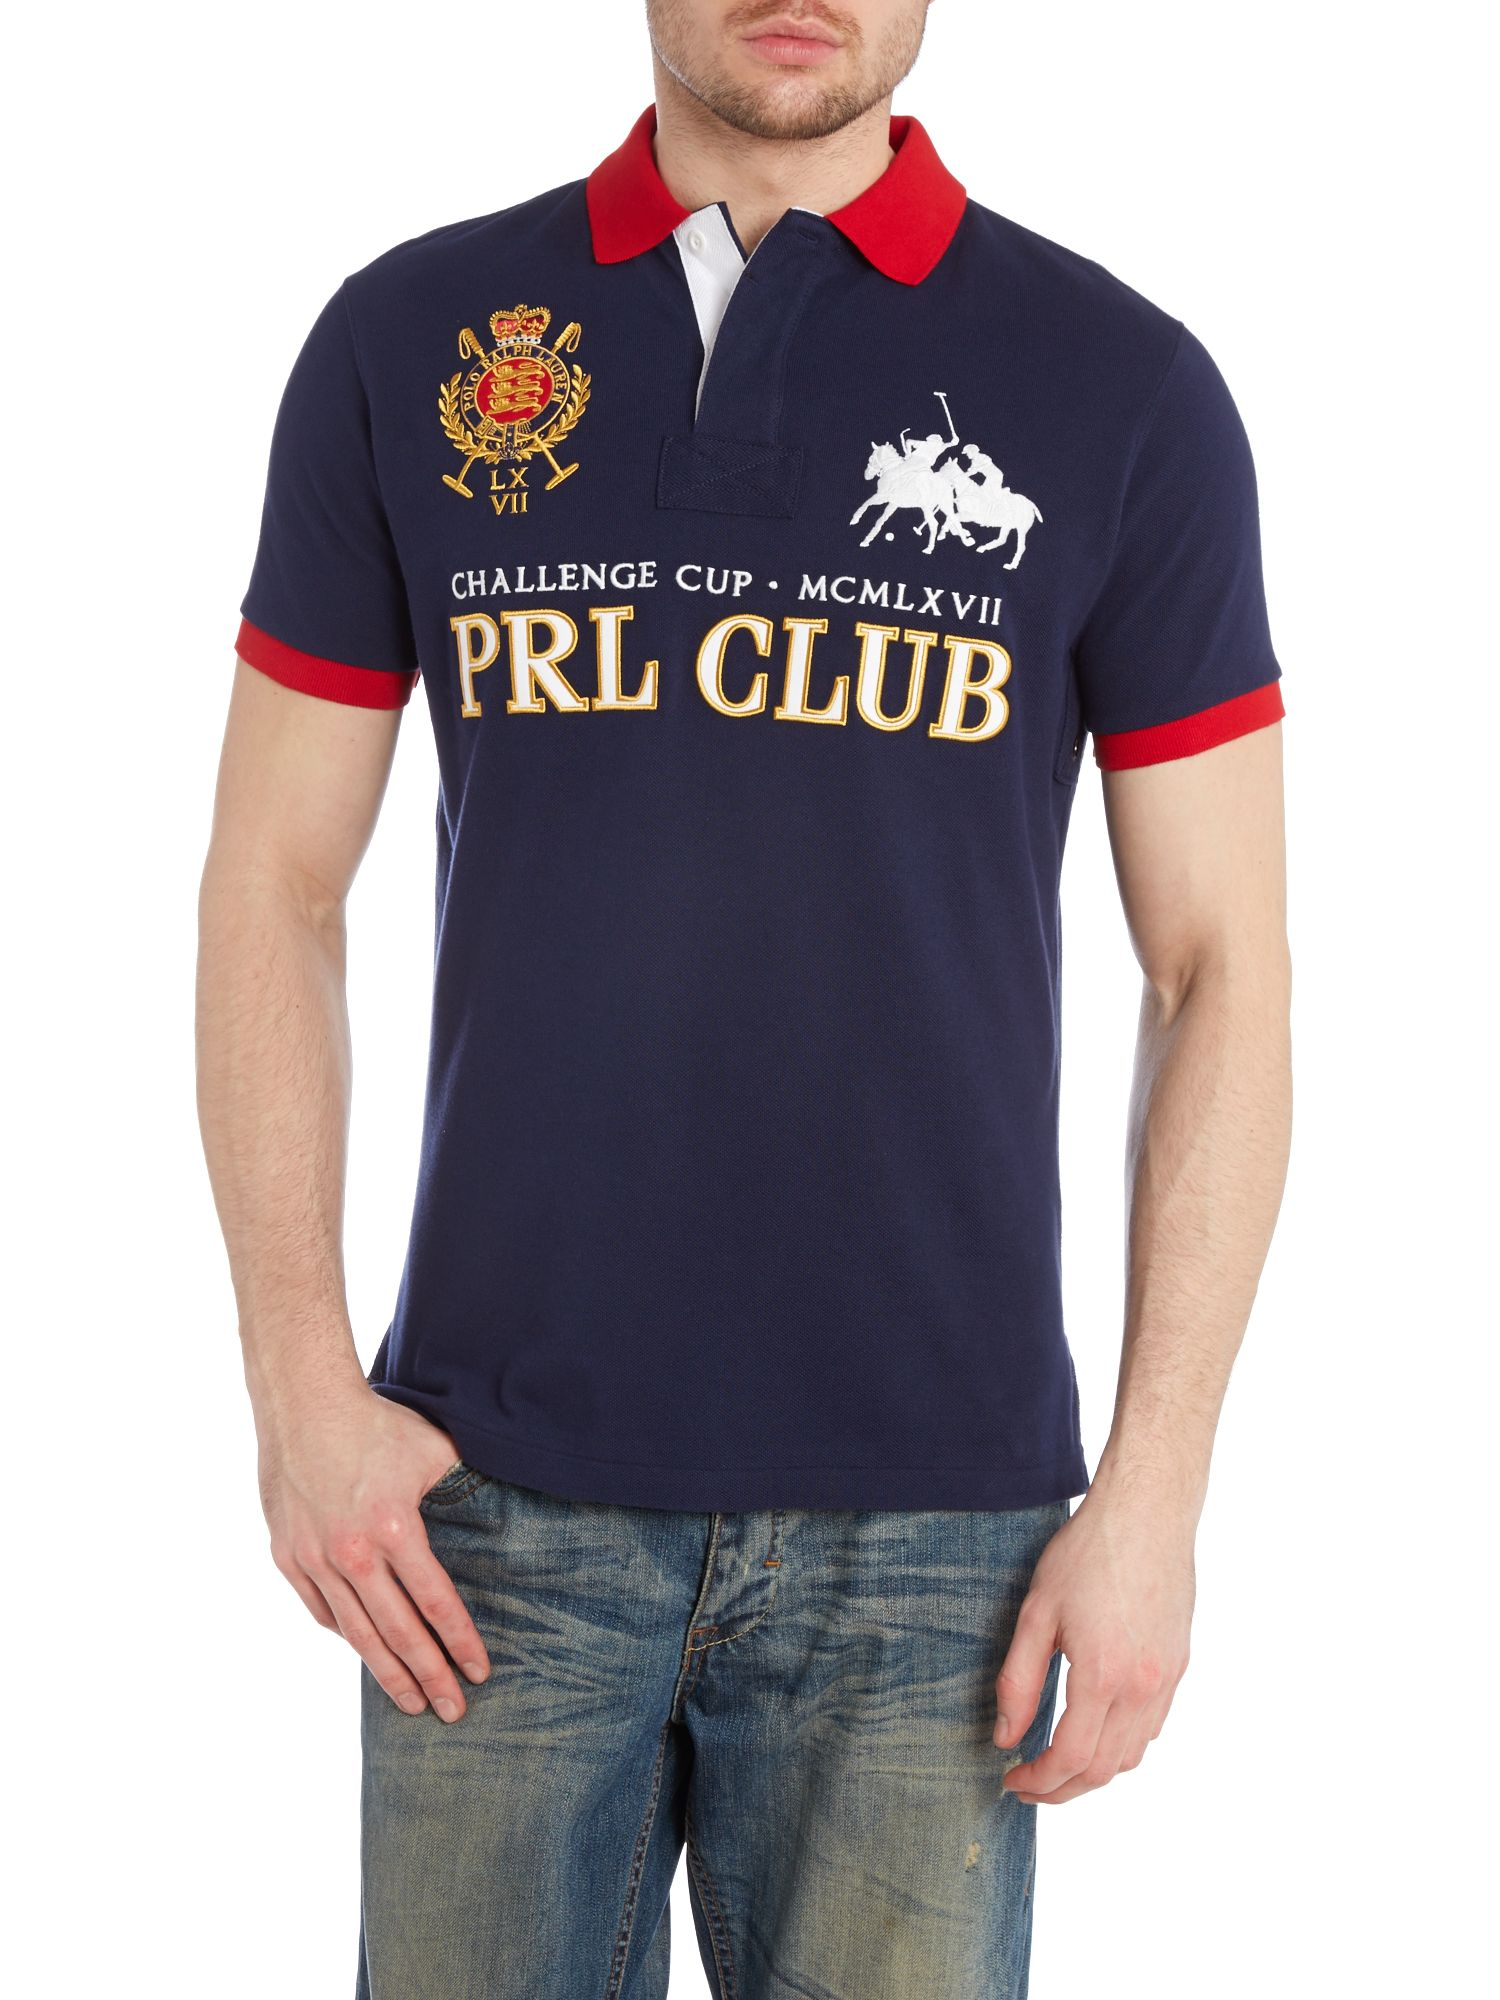 PRL club logo custom fit polo shirt